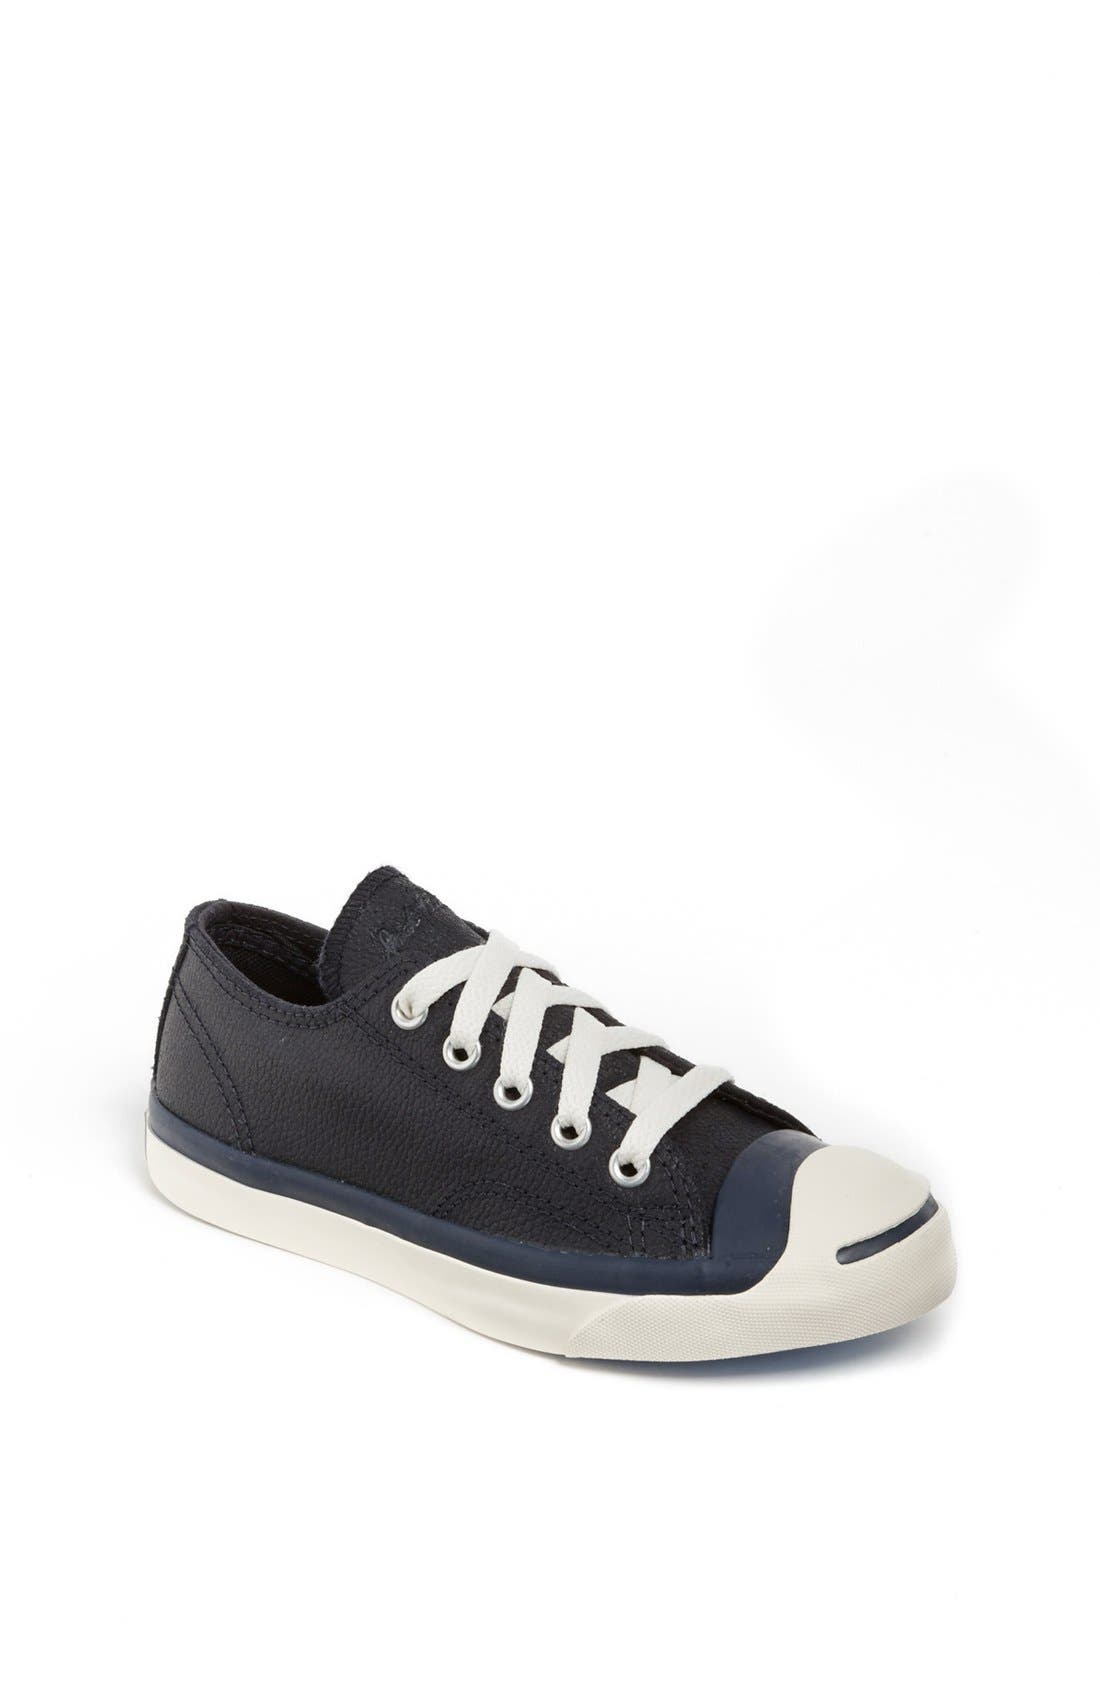 Main Image - Converse 'Jack Purcell' Sneaker (Toddler, Little Kid & Big Kid)